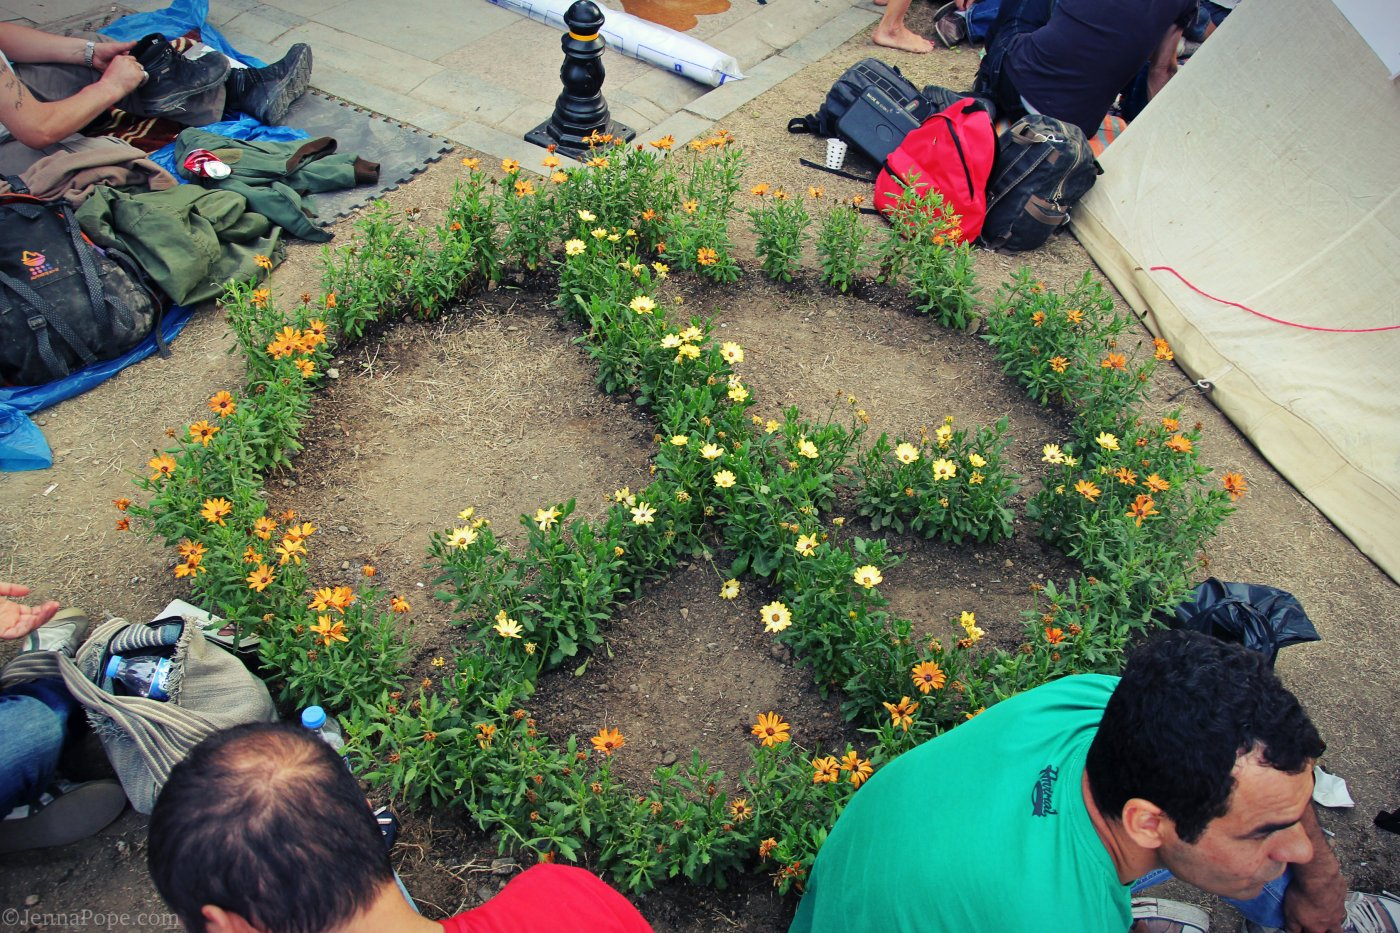 Flowers planted into a peace sign at the location in Gezi Park where the first few trees were cut down before the occupation and resistance in the park forced construction to end.